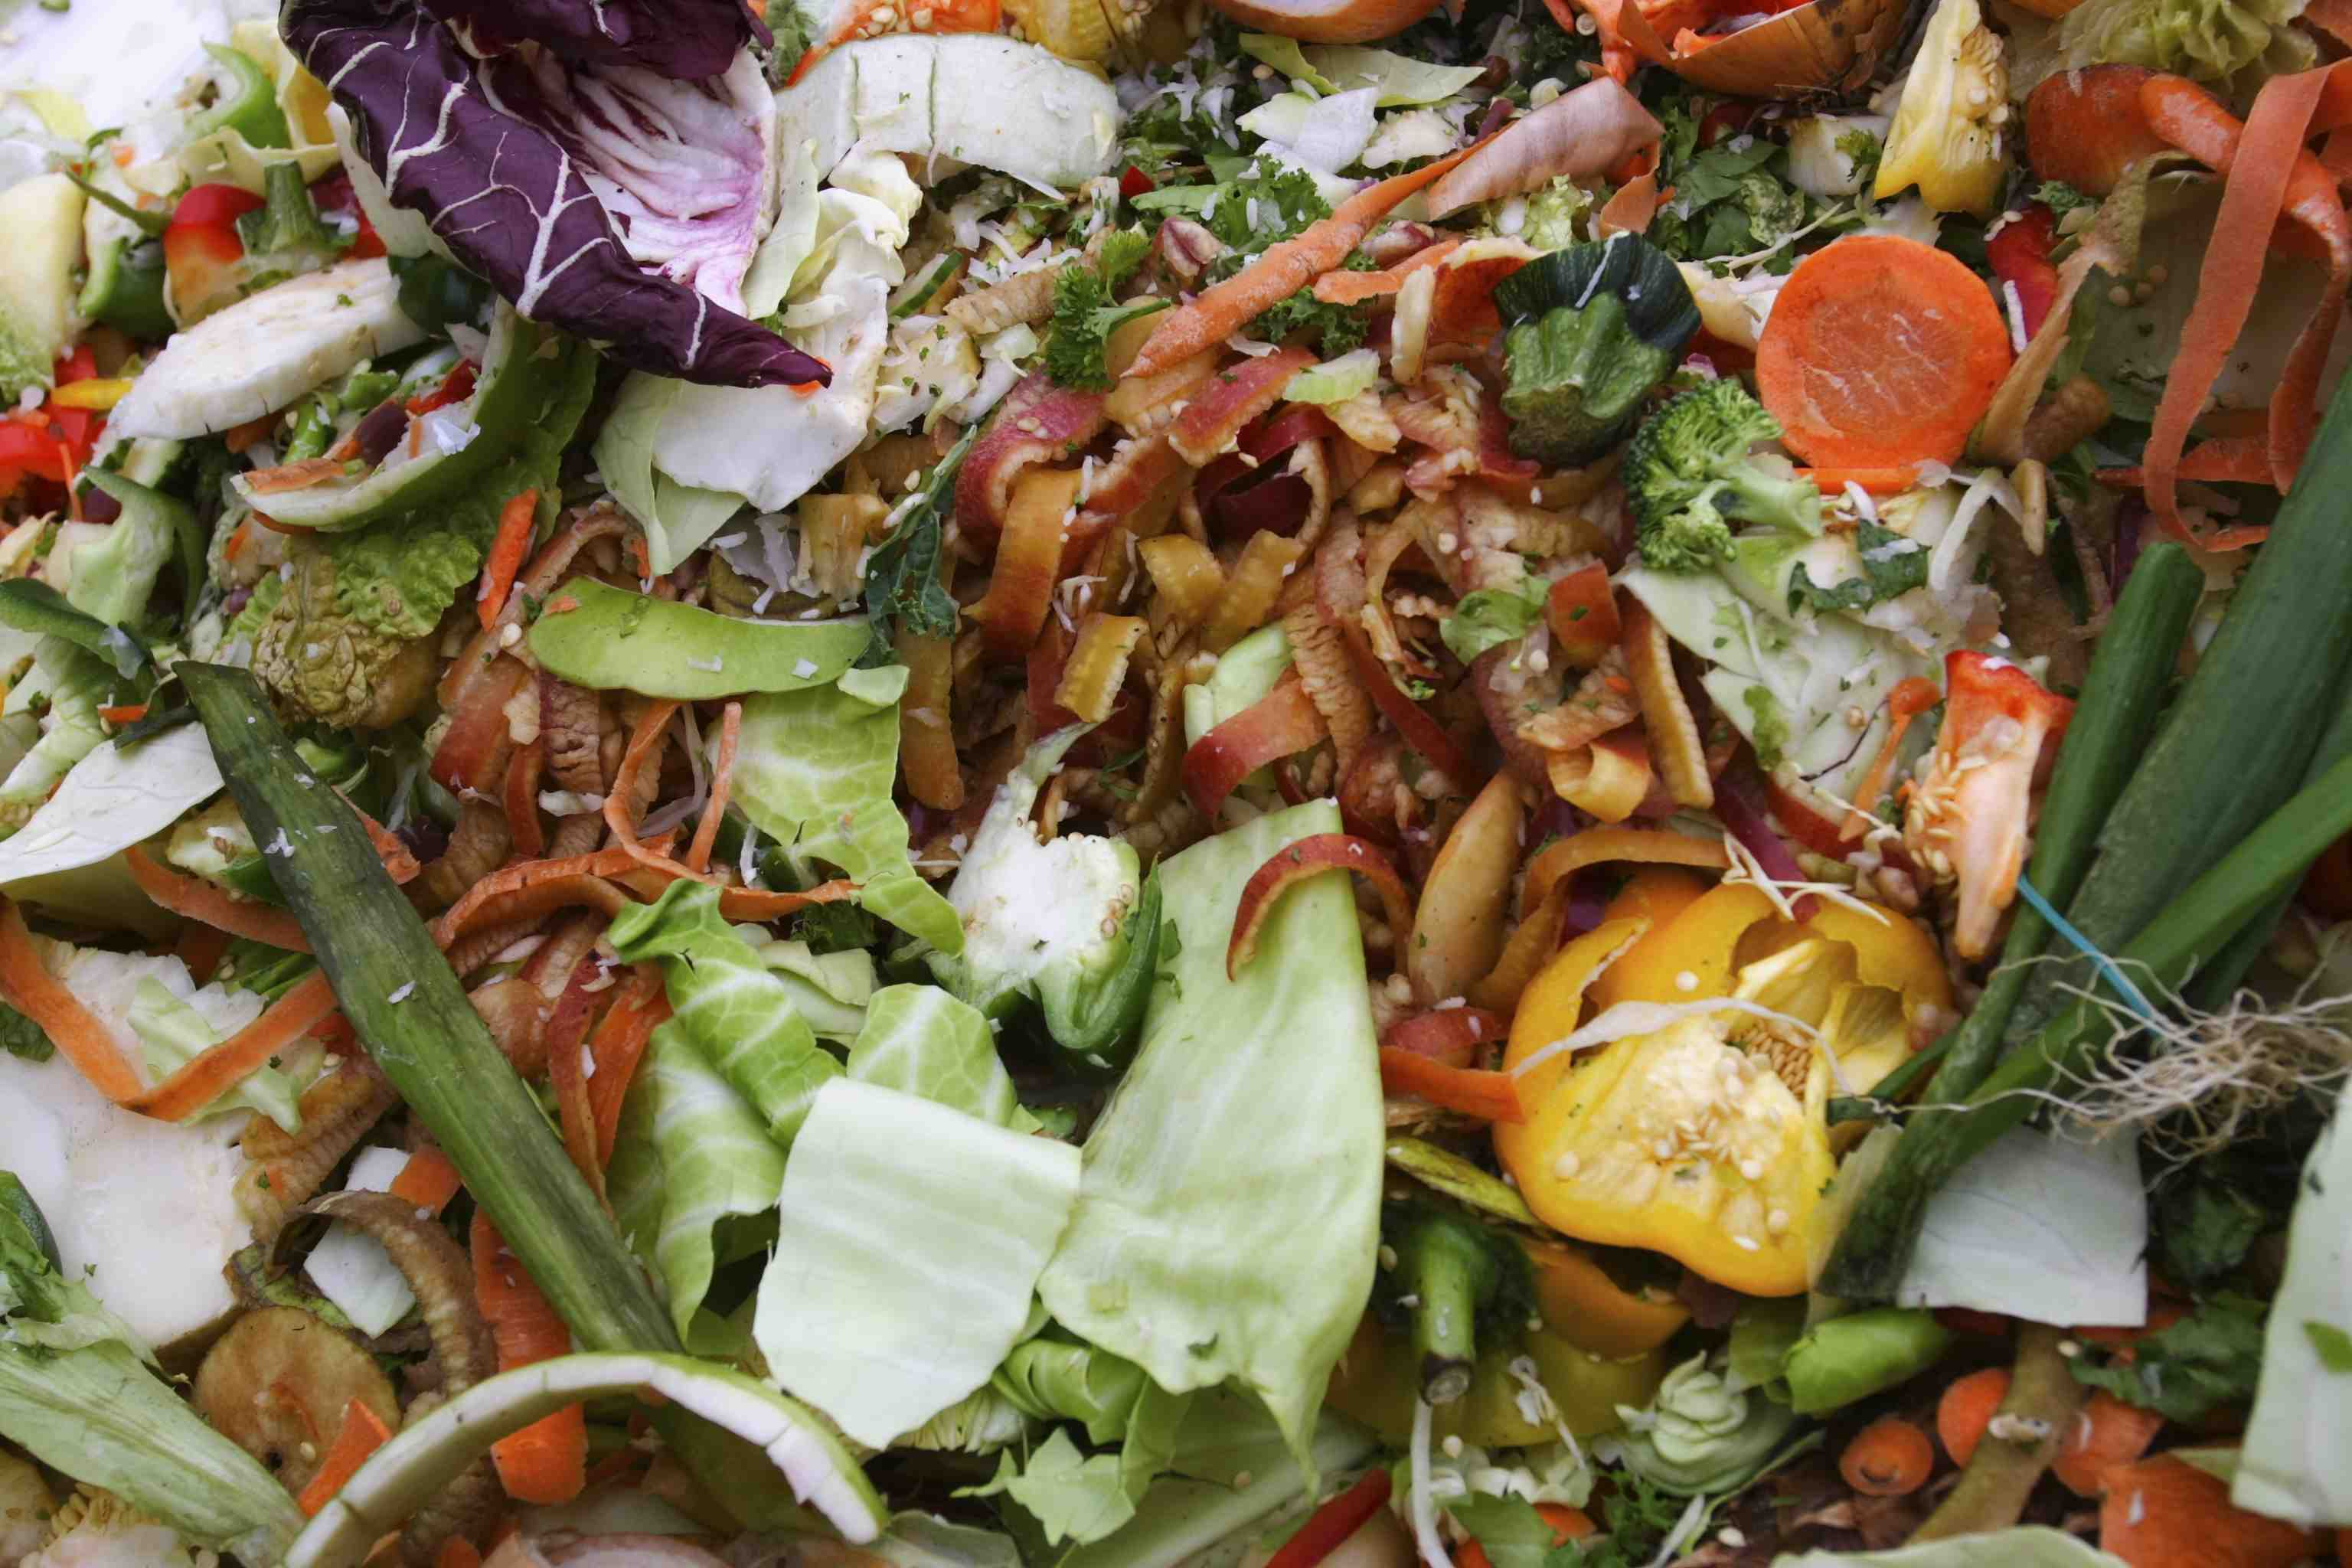 Food Waste generated in a Retail Premises